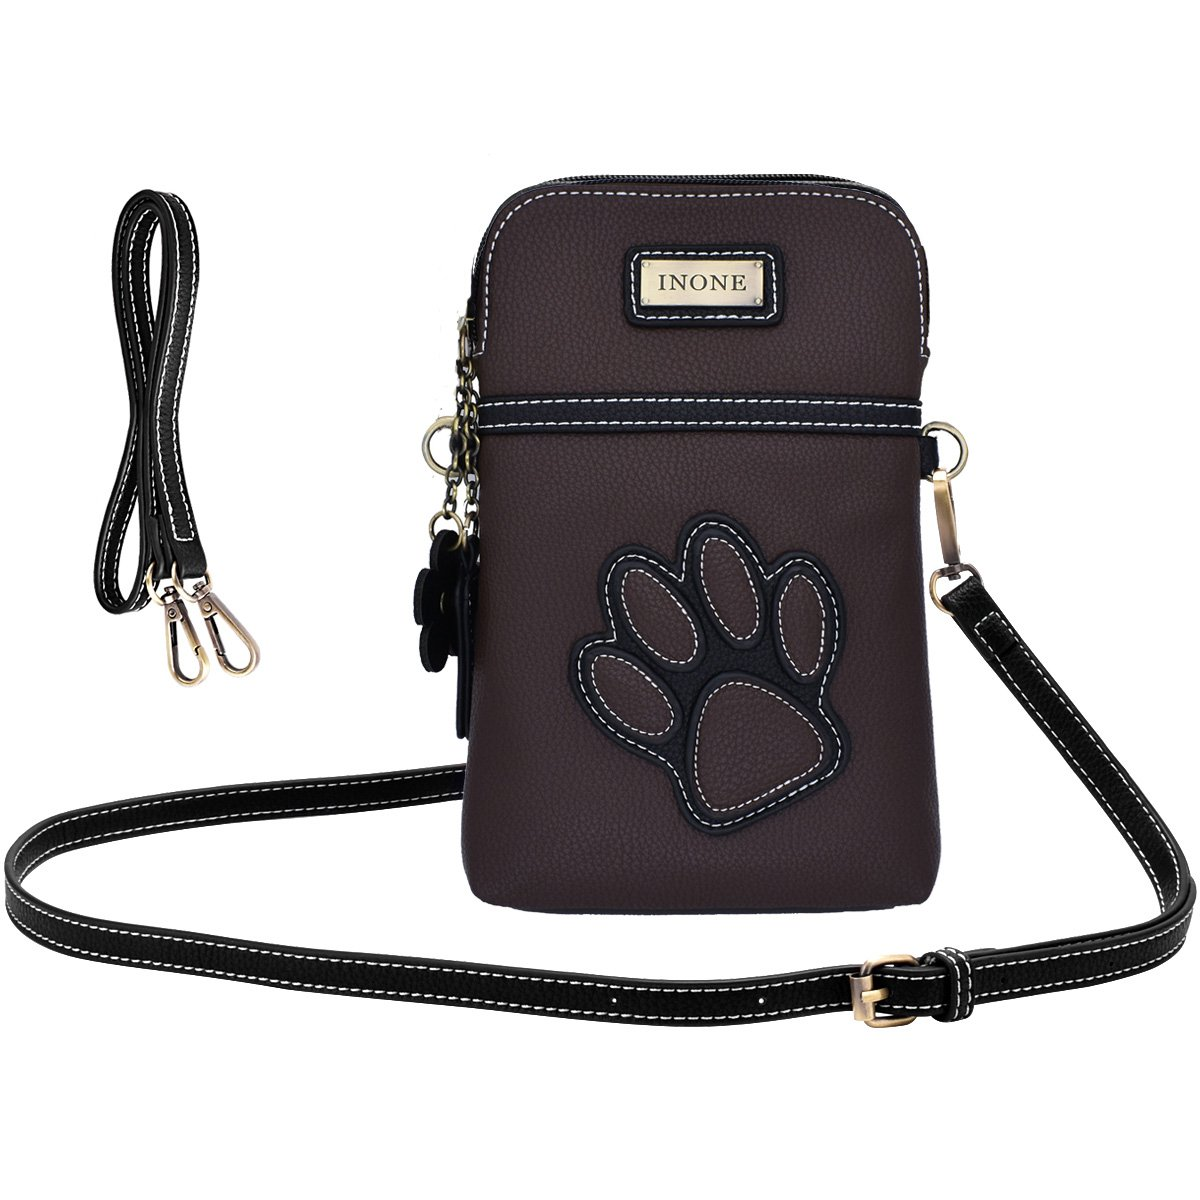 inOne Crossbody Bag Cell Phone Purse - Women PU Leather Handbag with Adjustable Straps - Paw Print Brown